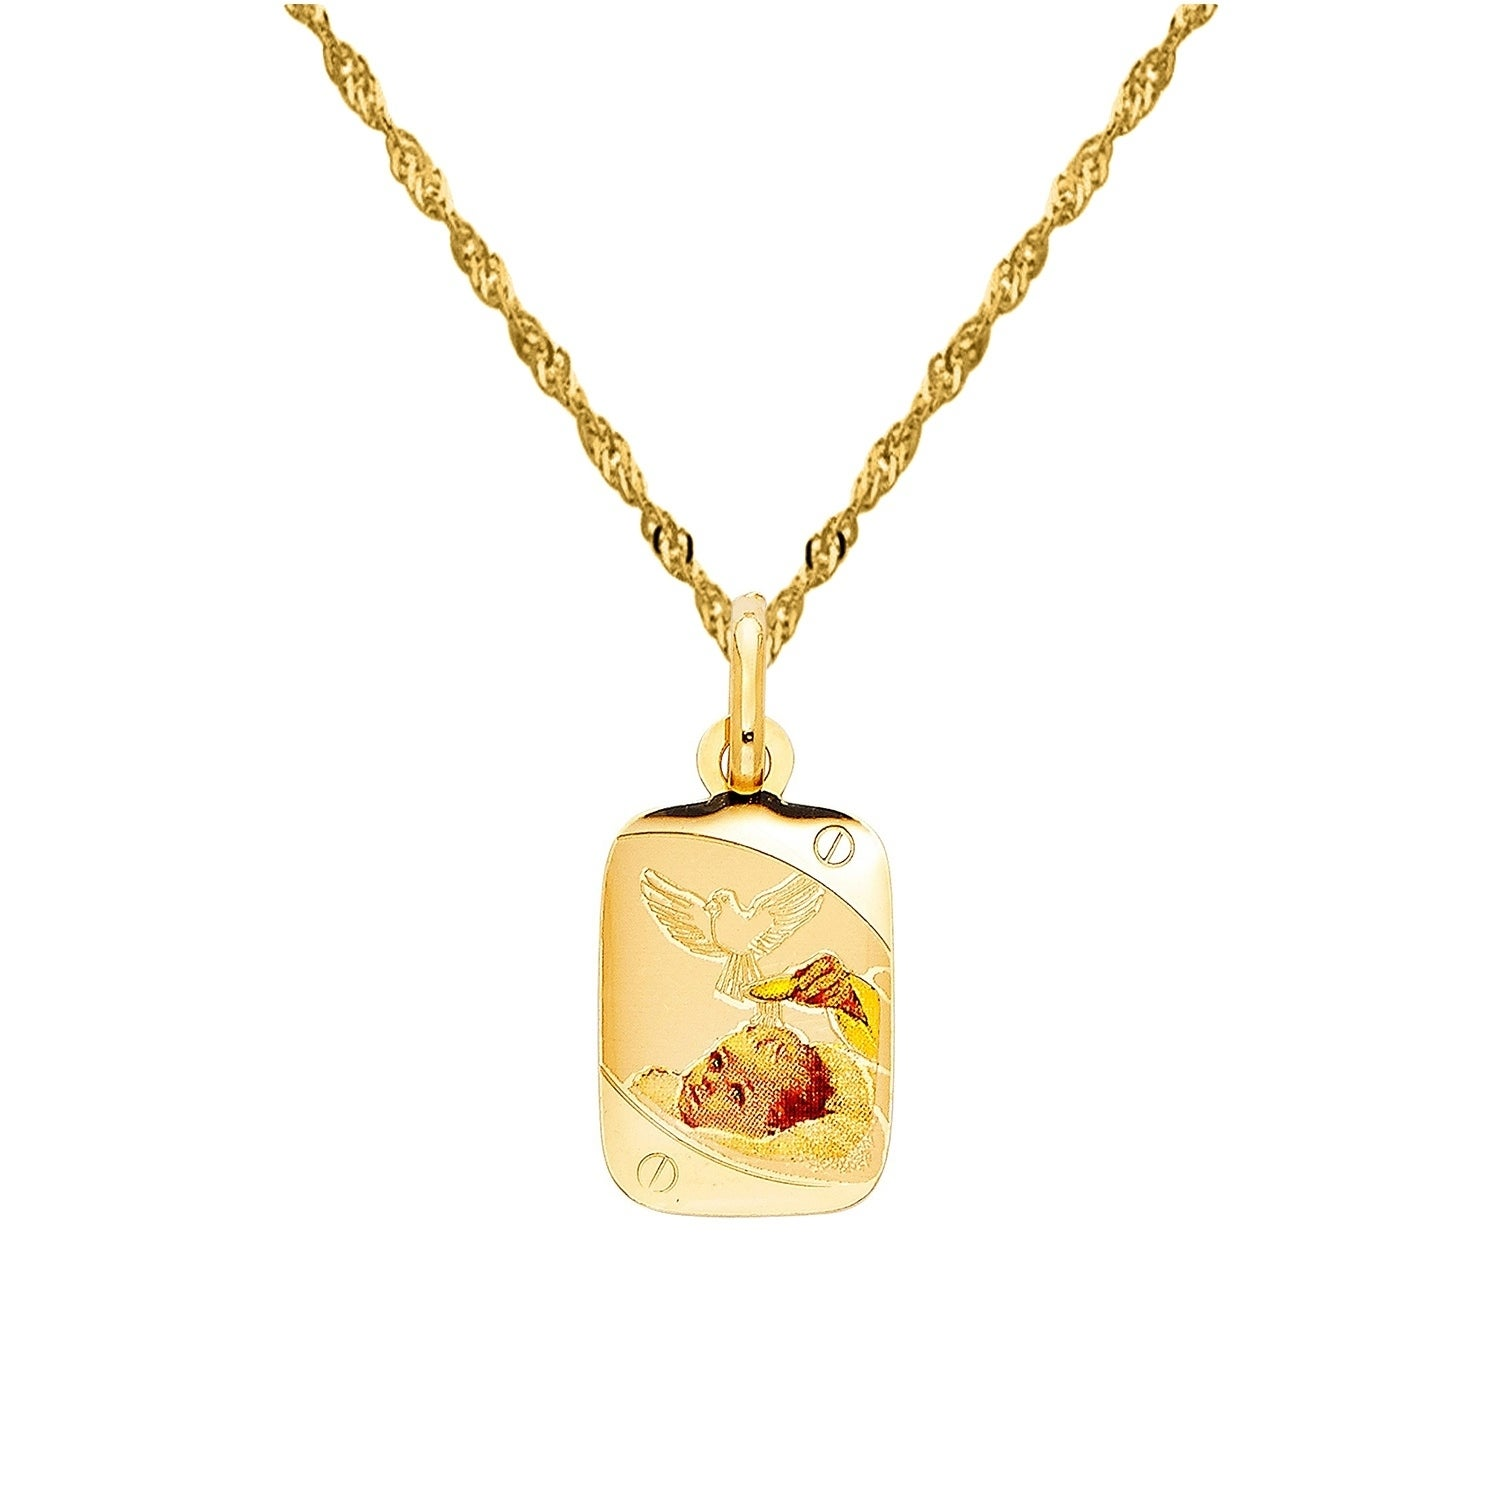 f gold in necklace paua pendant rectangular and set plate